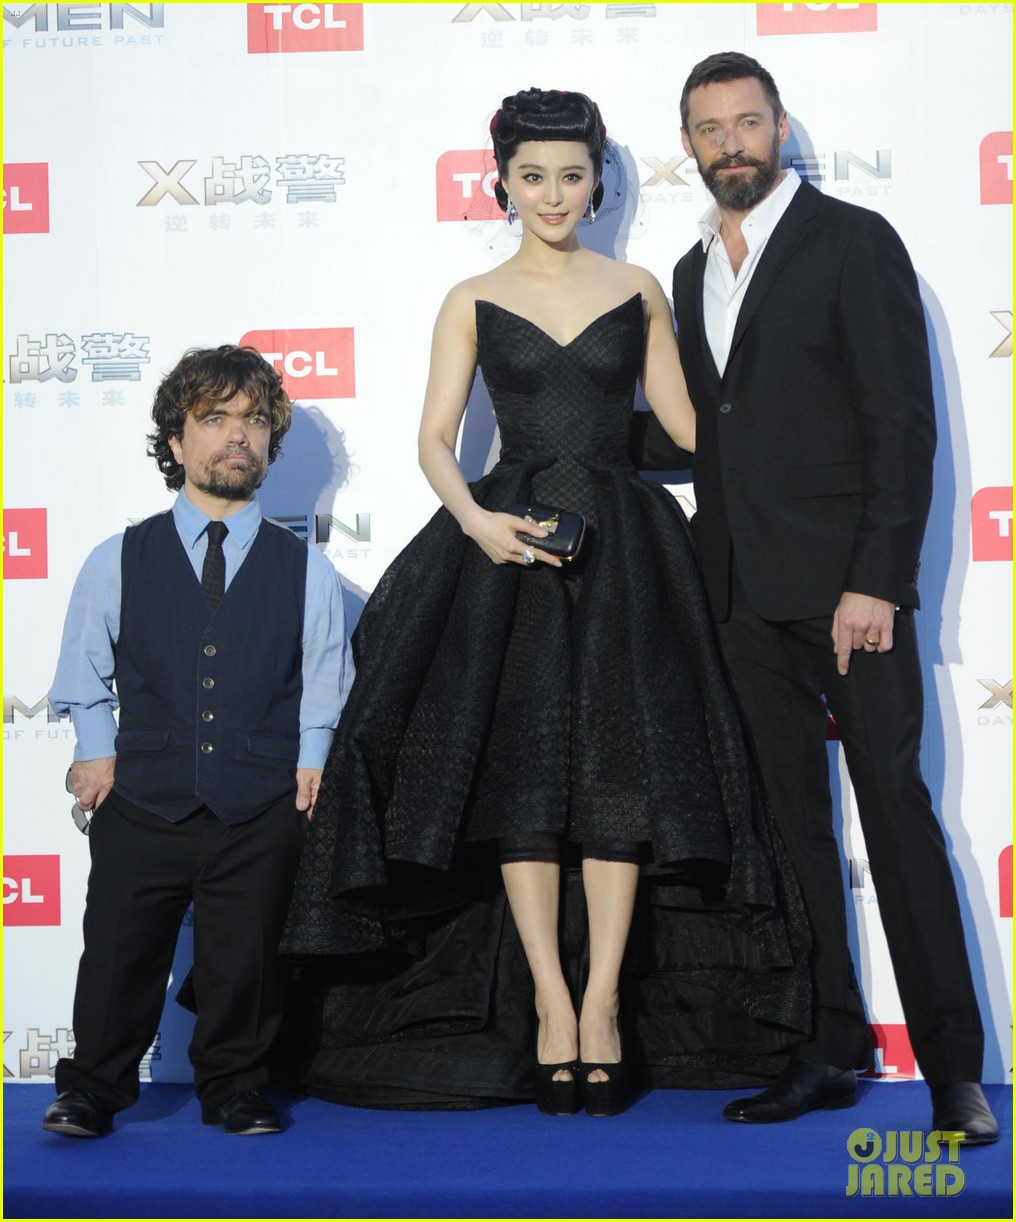 hugh jackman premieres x men with fan bingbing peter dinklage in beijing 123113092